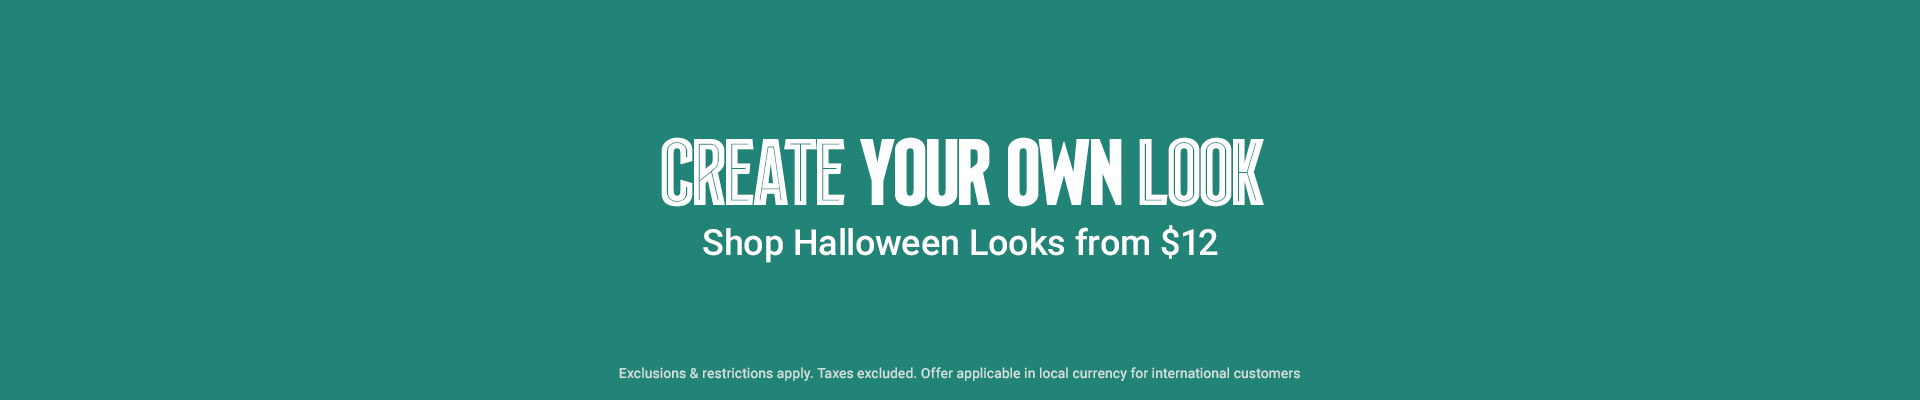 CREATE YOUR OWN LOOK | Shop Halloween Looks from $12 *Exclusions & restrictions apply. Taxes excluded. Offer applicable in local currency for international customers.